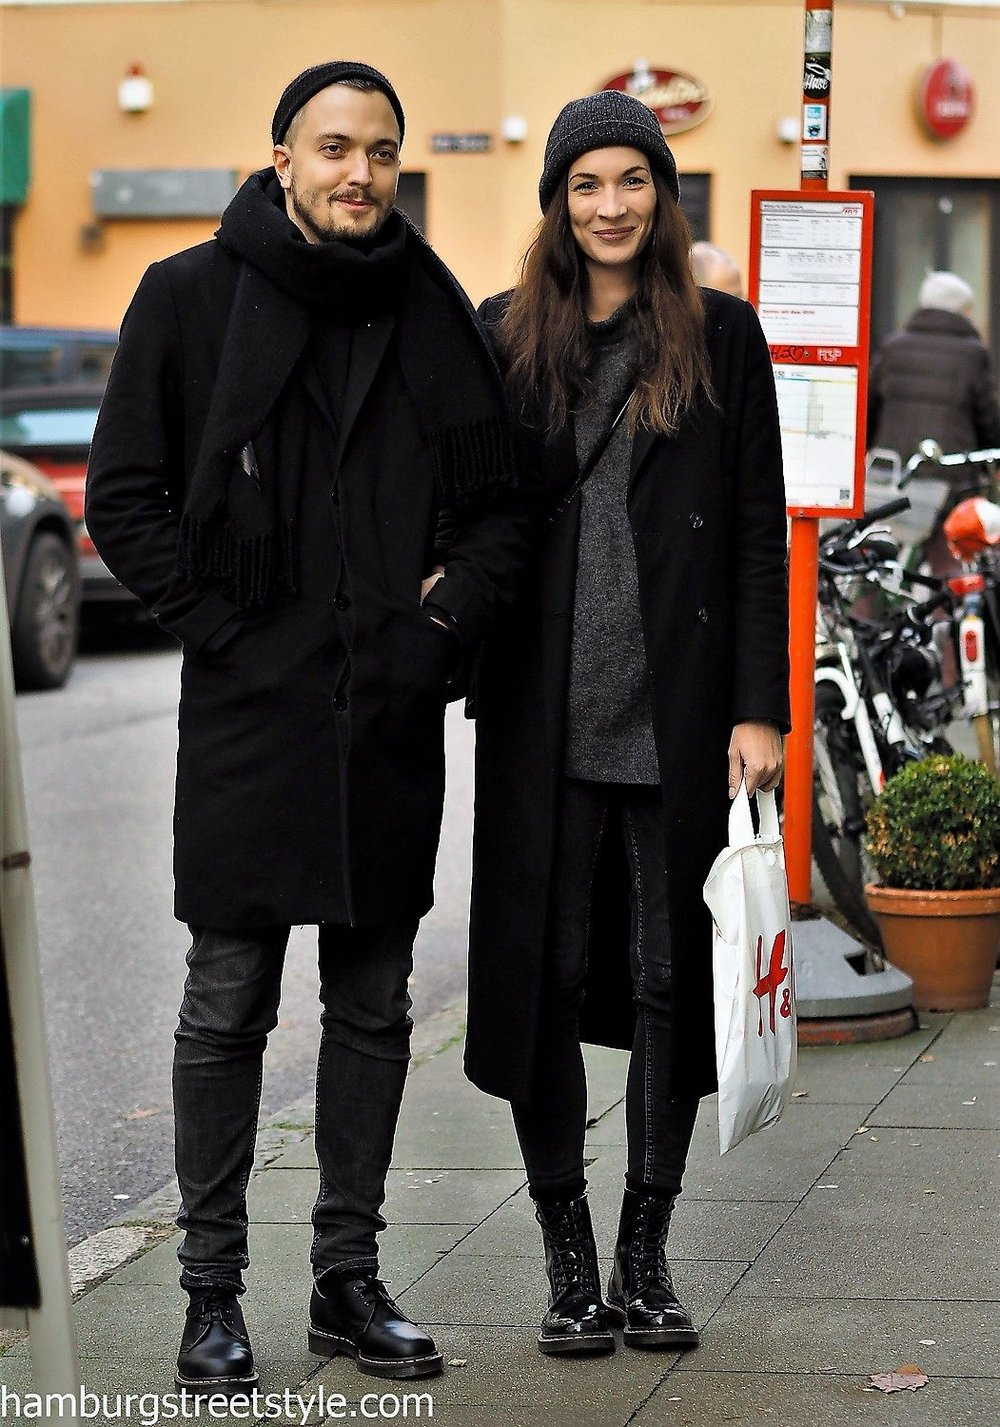 Streetstyle stylish couple